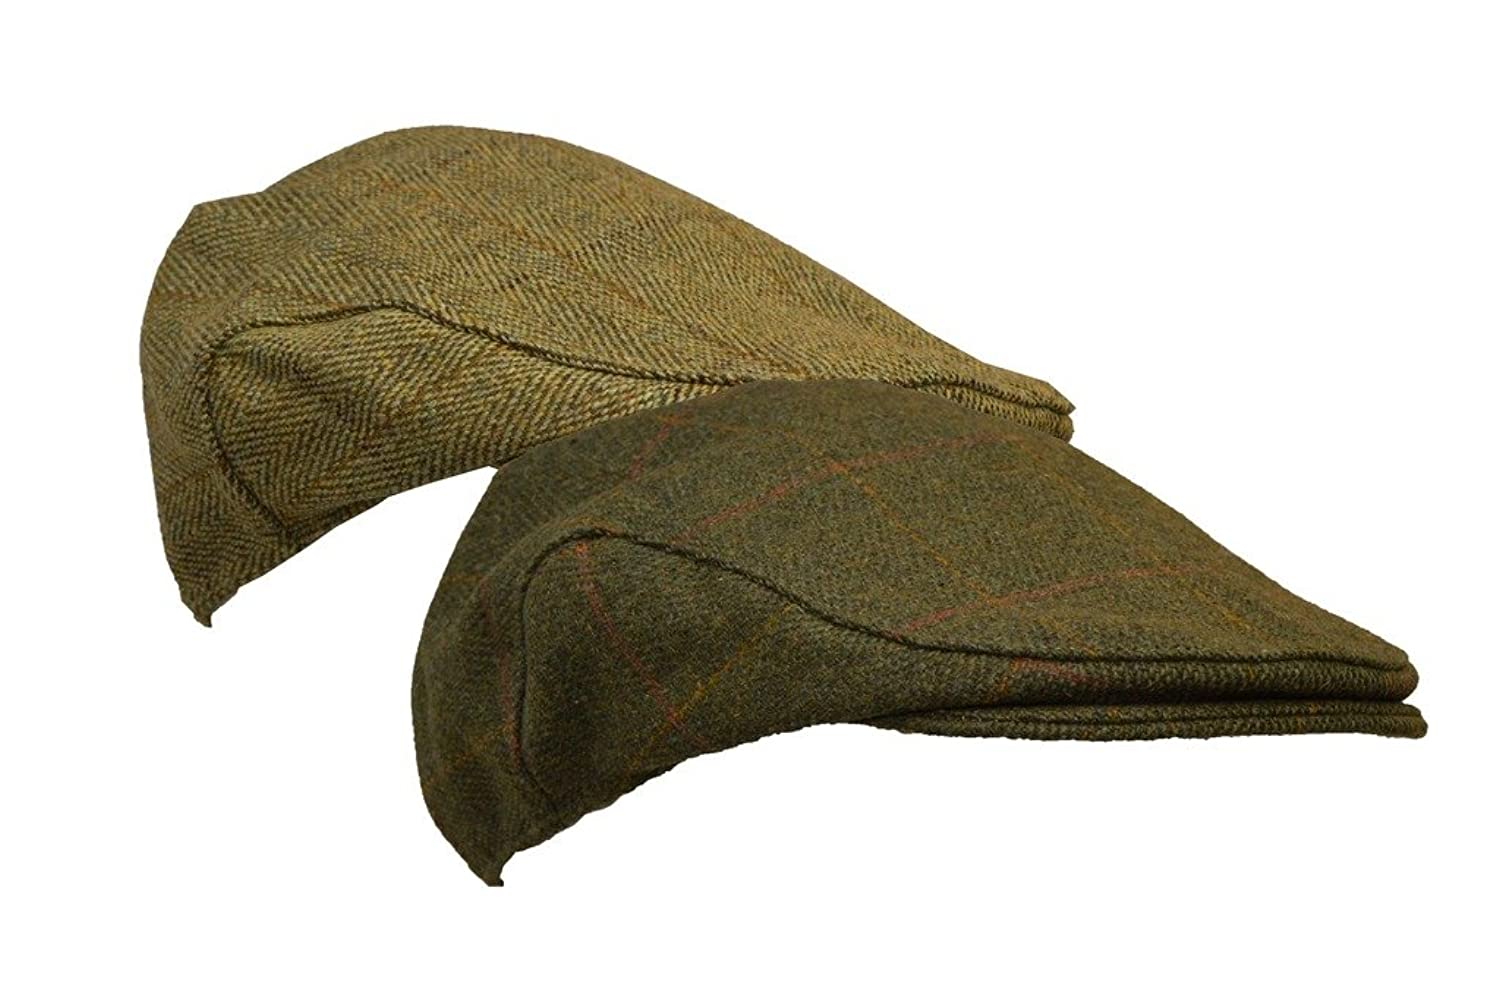 Mens 1920s Style Hats and Caps Mens Derby Tweed Flat Cap Hunting Shooting Countrywear Hat $22.02 AT vintagedancer.com